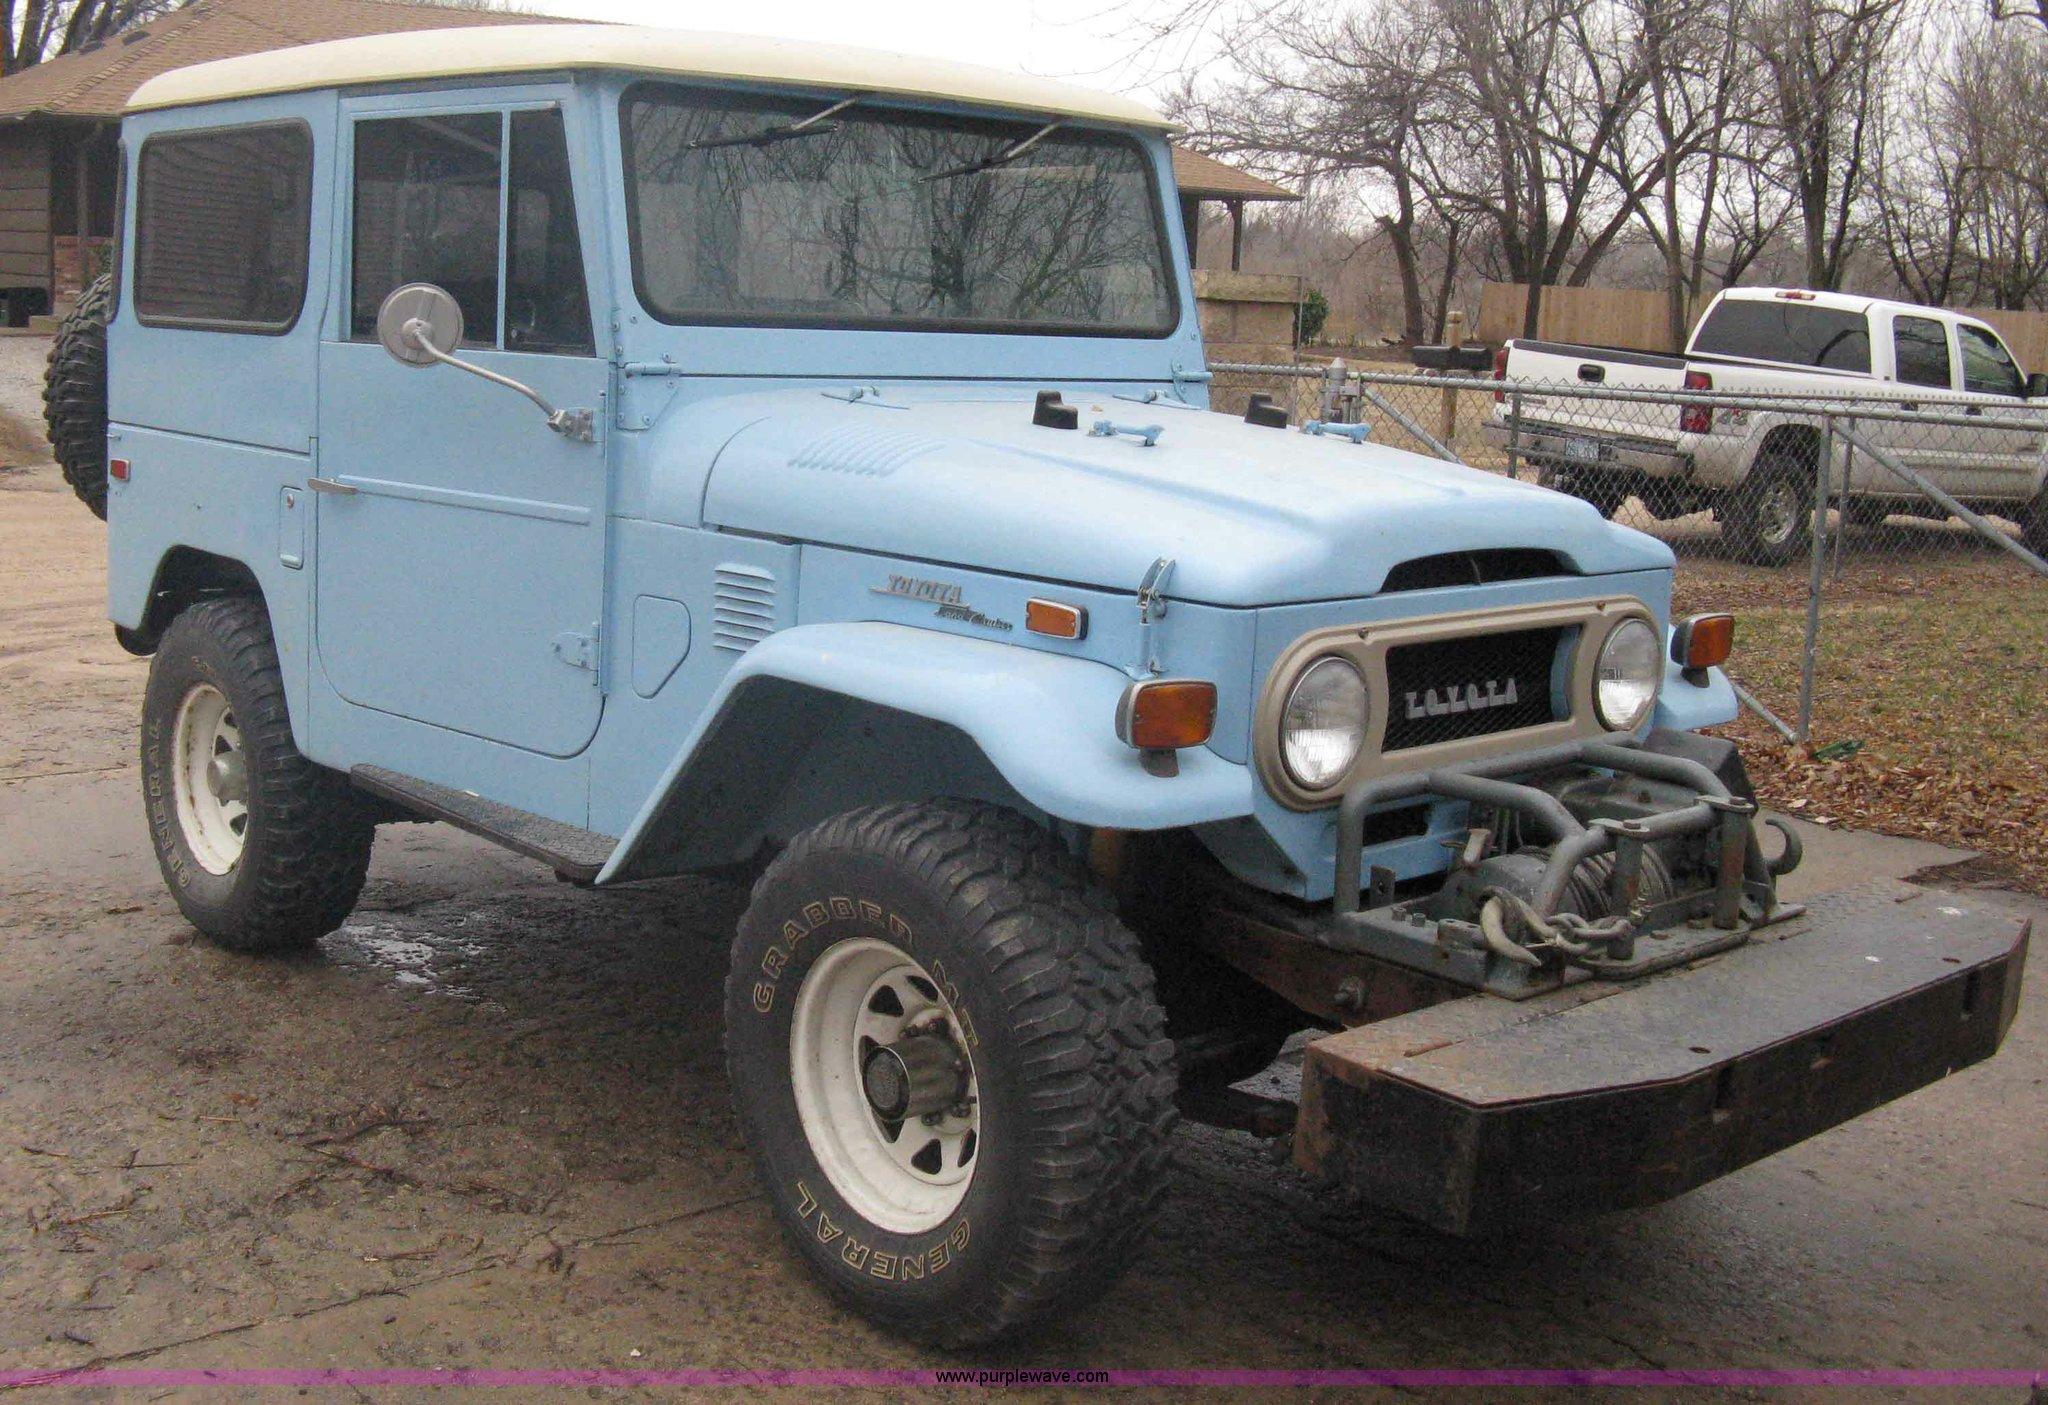 1973 Toyota Land Cruiser Item A6056 Sold March 7 Midwes Owners Manual Image For